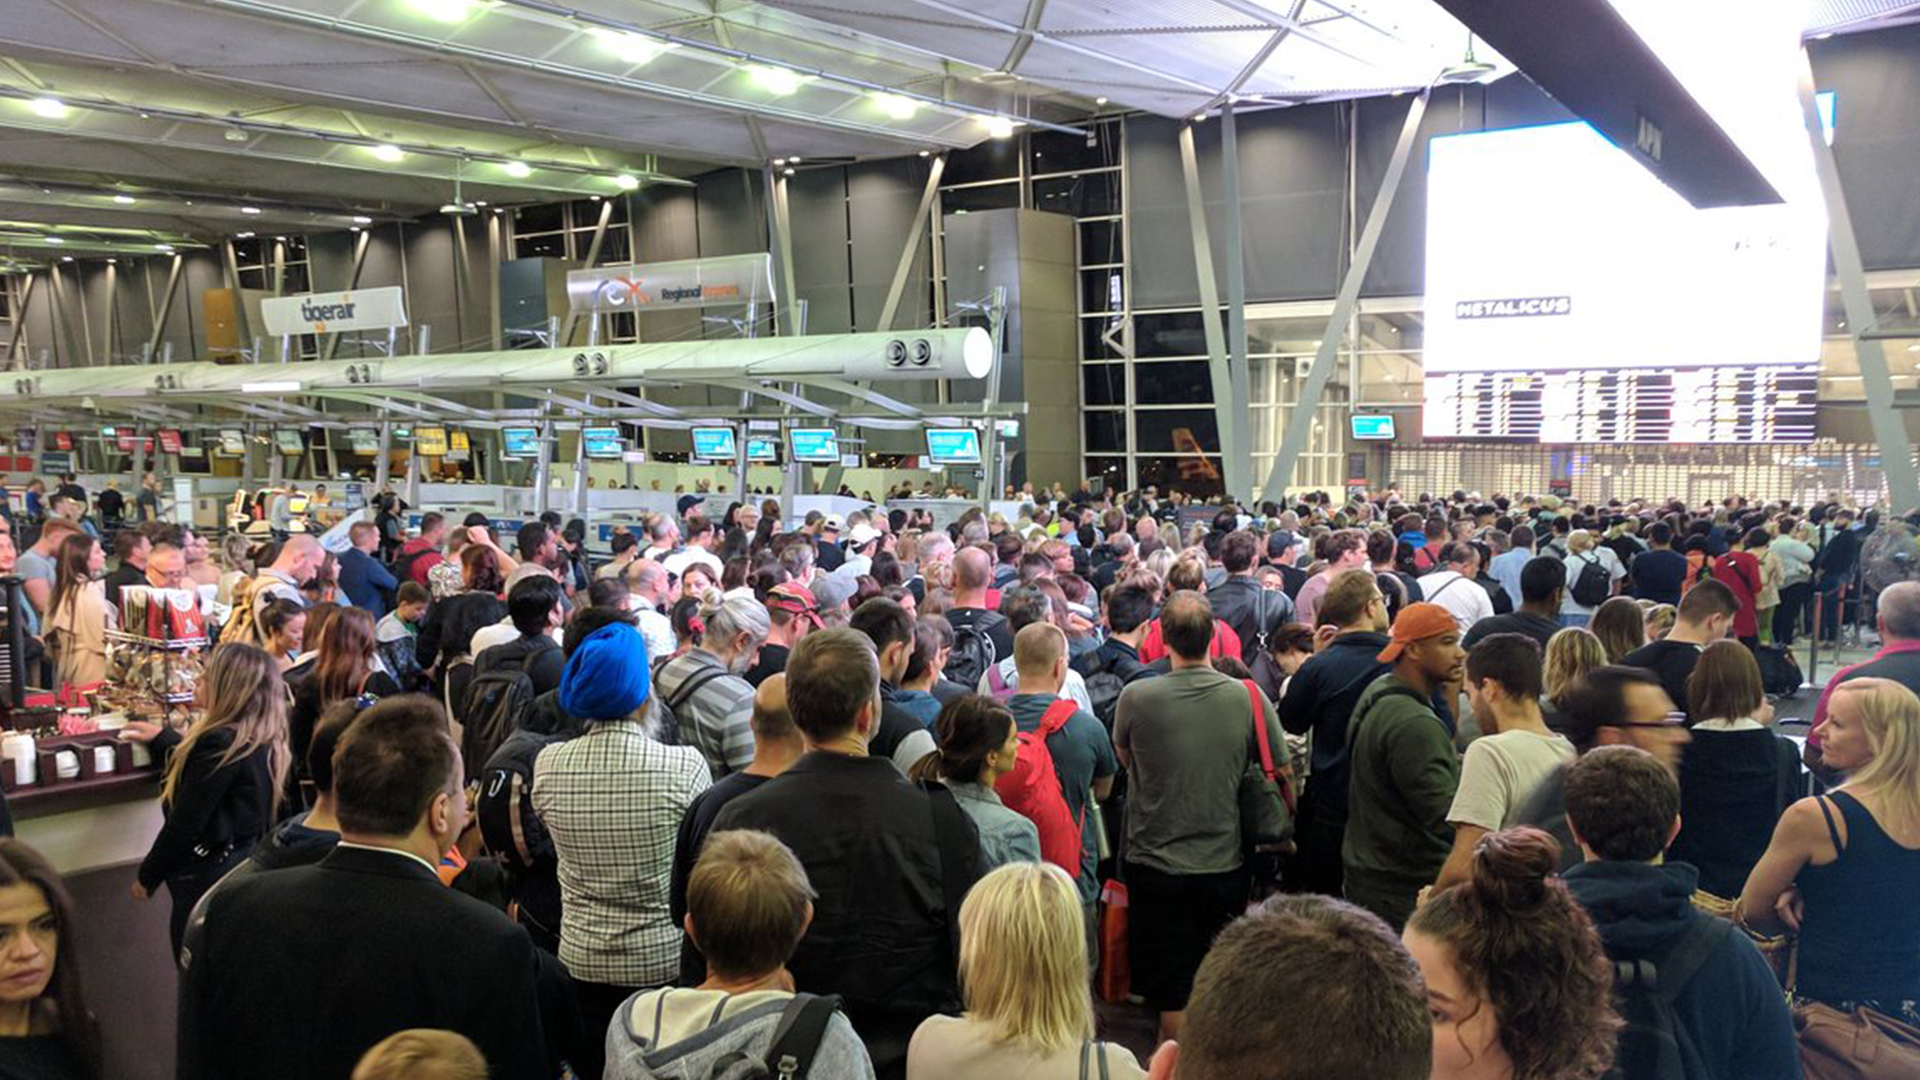 Brisbane airport in chaos as passenger sets off security screen